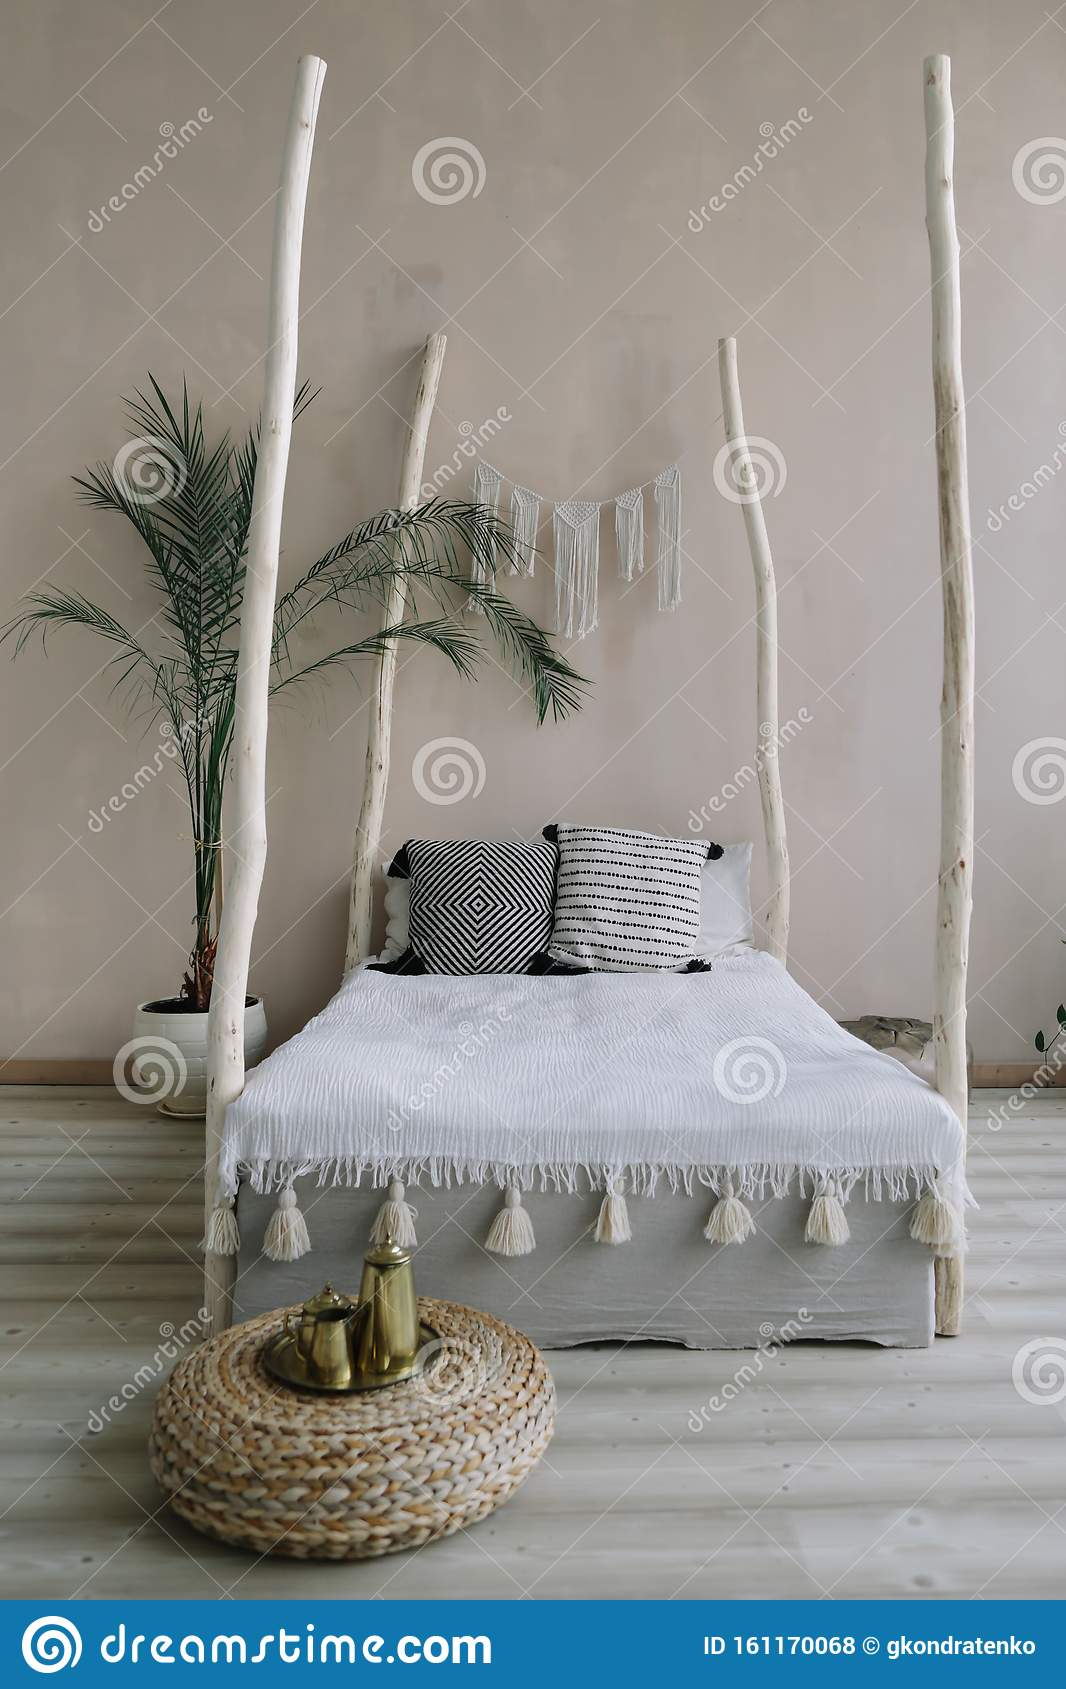 Modern Minimal Home Interior Design Bed With Wooden Canopy And Pillows Exotic Bedroom Interior Scandinavian Style Stock Photo Image Of Indian Blanket 161170068,Simple Blouse Back Neck Designs Catalogue